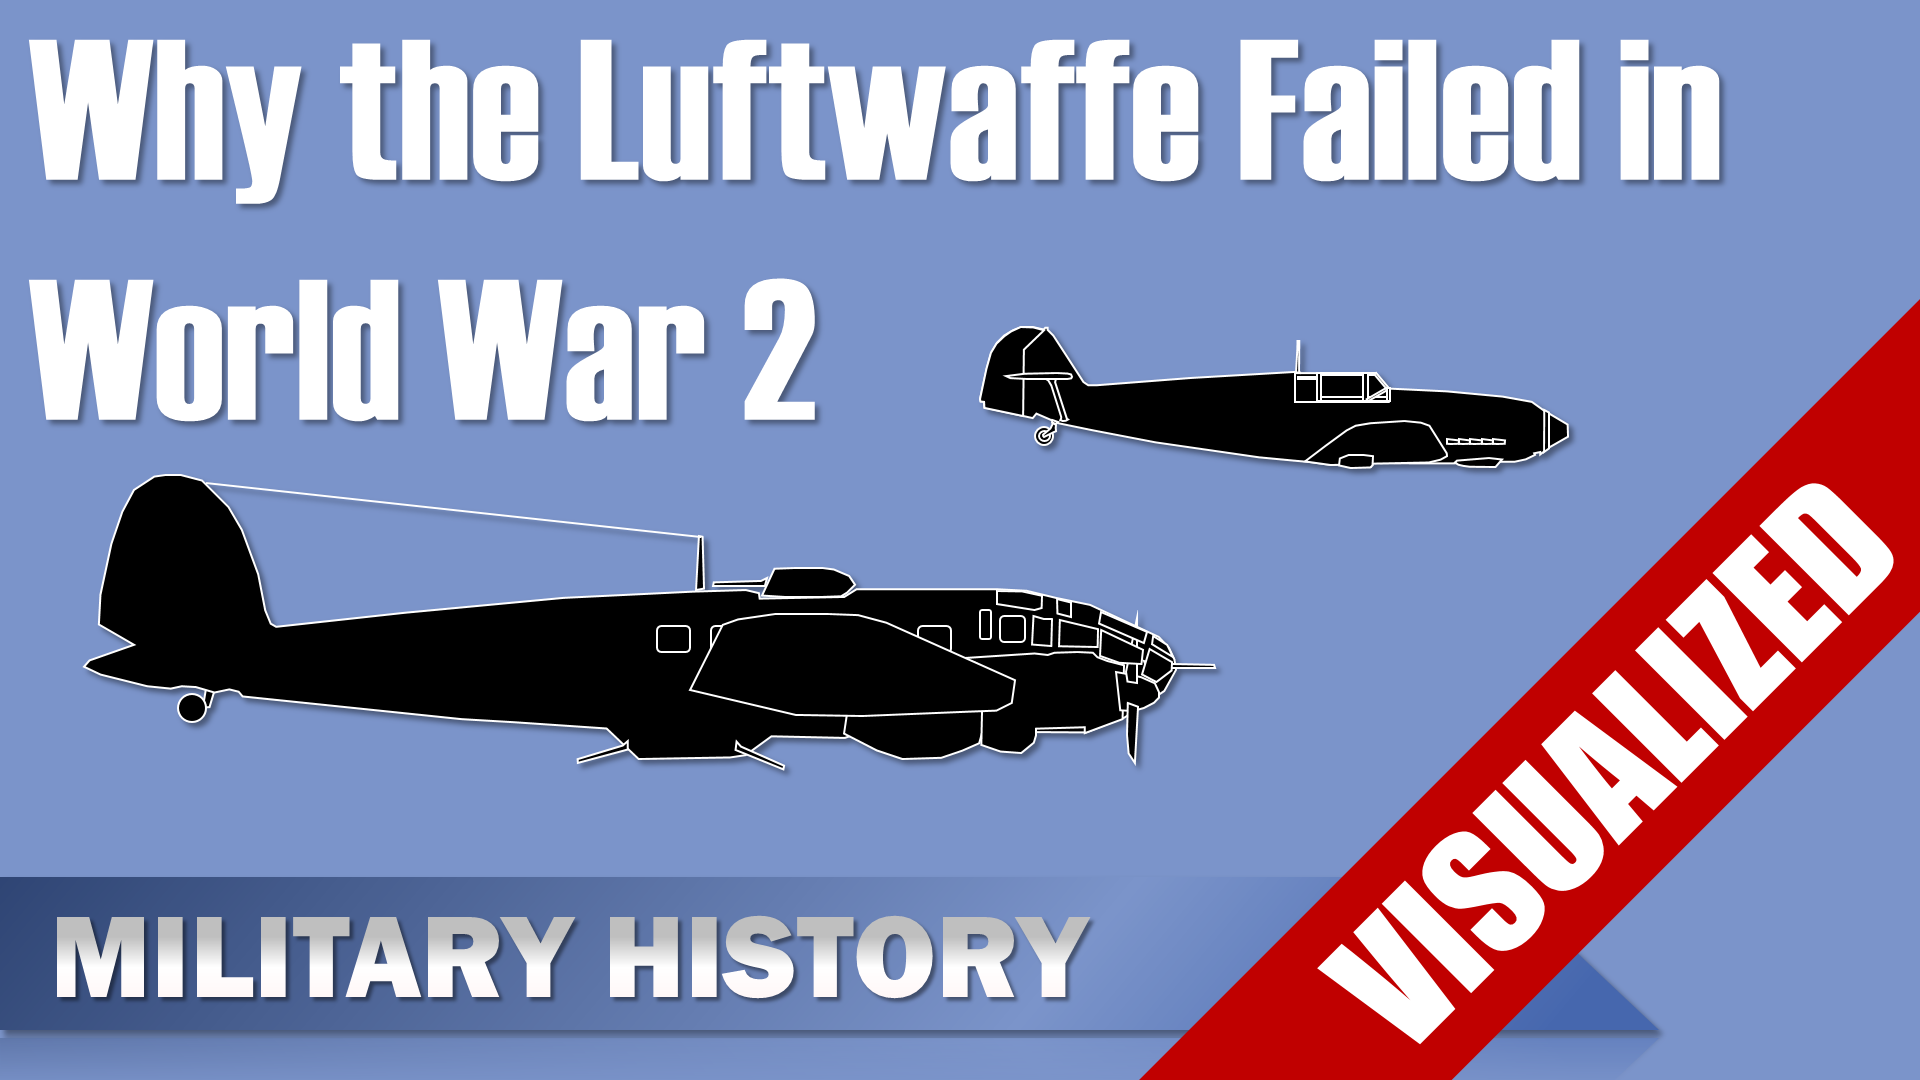 Why The Luftwaffe Failed In World War 2